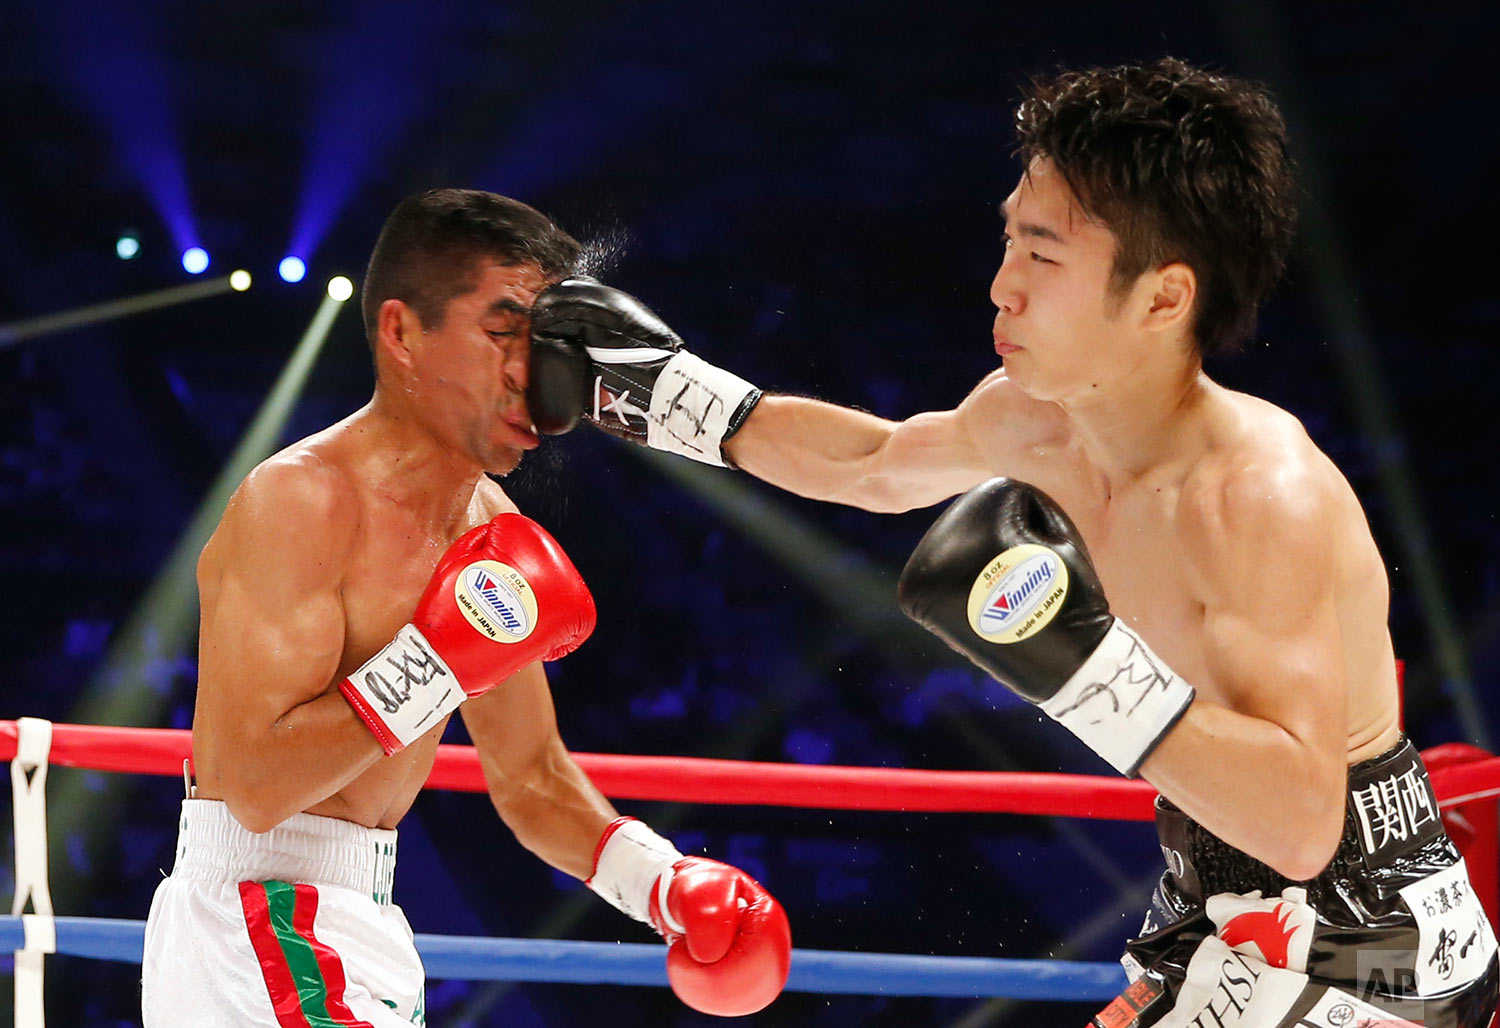 In this Saturday, May 20, 2017, photo, Japan's Shiro Ken, right, lands a right on the face of Mexican champion Ganigan Lopez in the third round of their WBC light flyweight boxing world title match in Tokyo, Saturday, May 20, 2017. Ken won the title by a 2-0 decision. (AP Photo/Toru Takahashi)